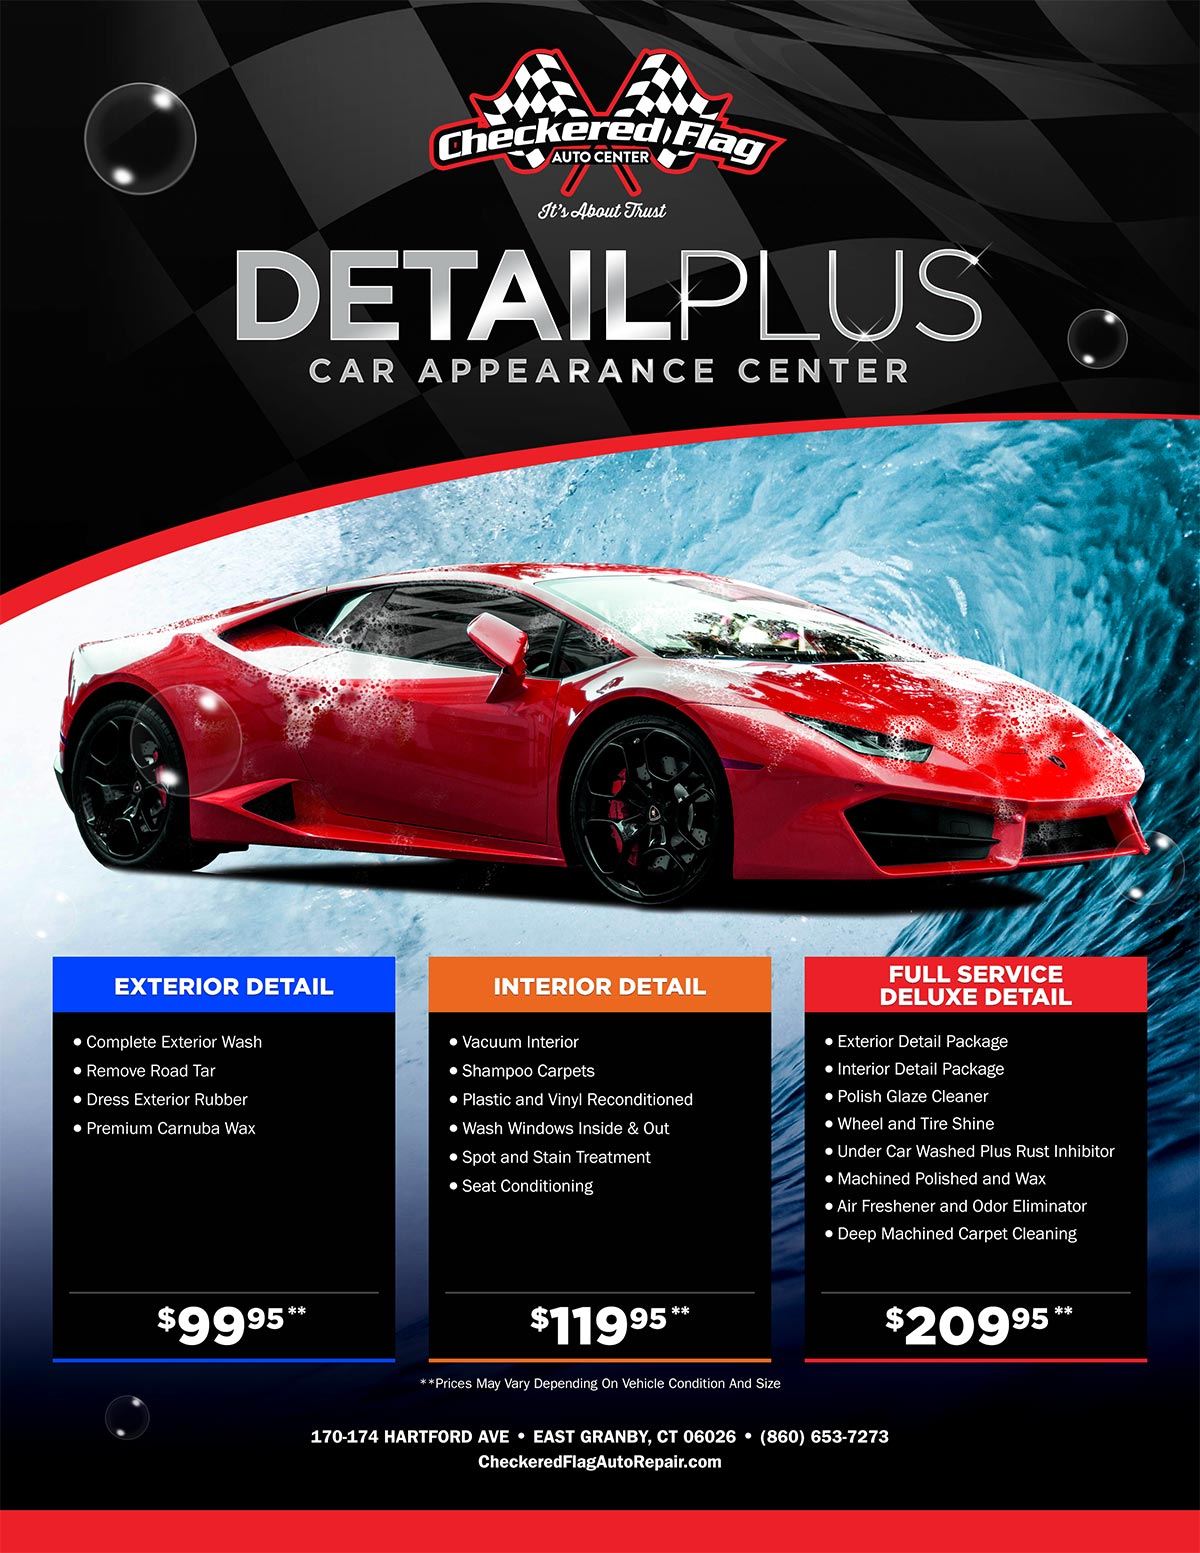 Detail Plus Car Appearance Center